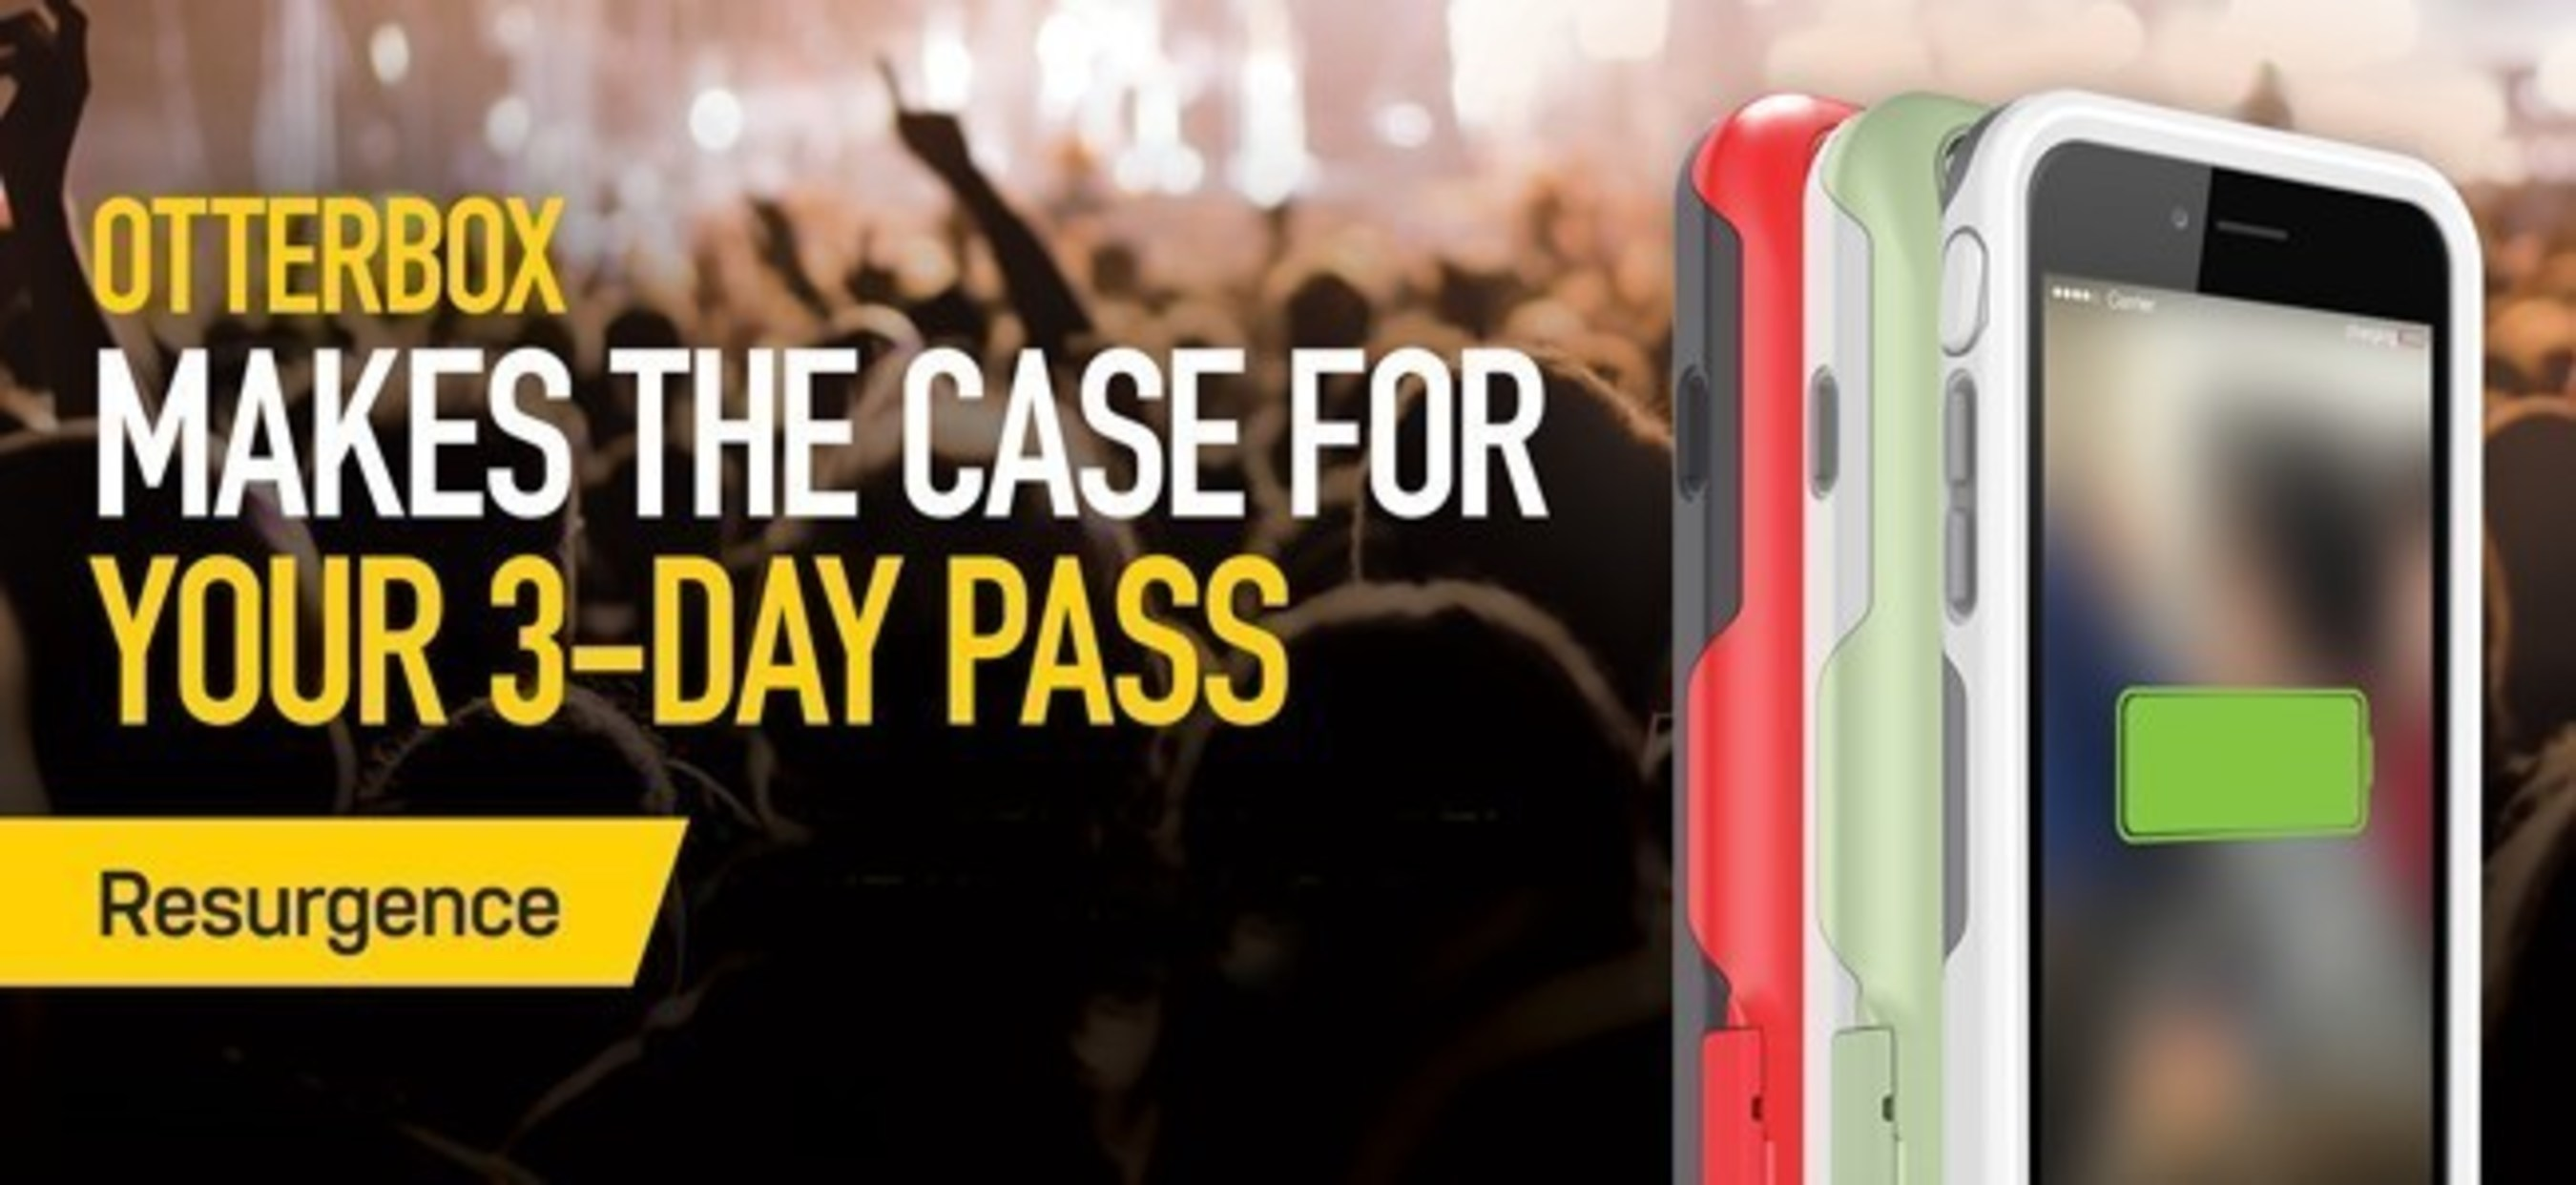 OtterBox makes the case for music festivals with the 2015 OtterTour - a cross-country trek to festivals all over the U.S.